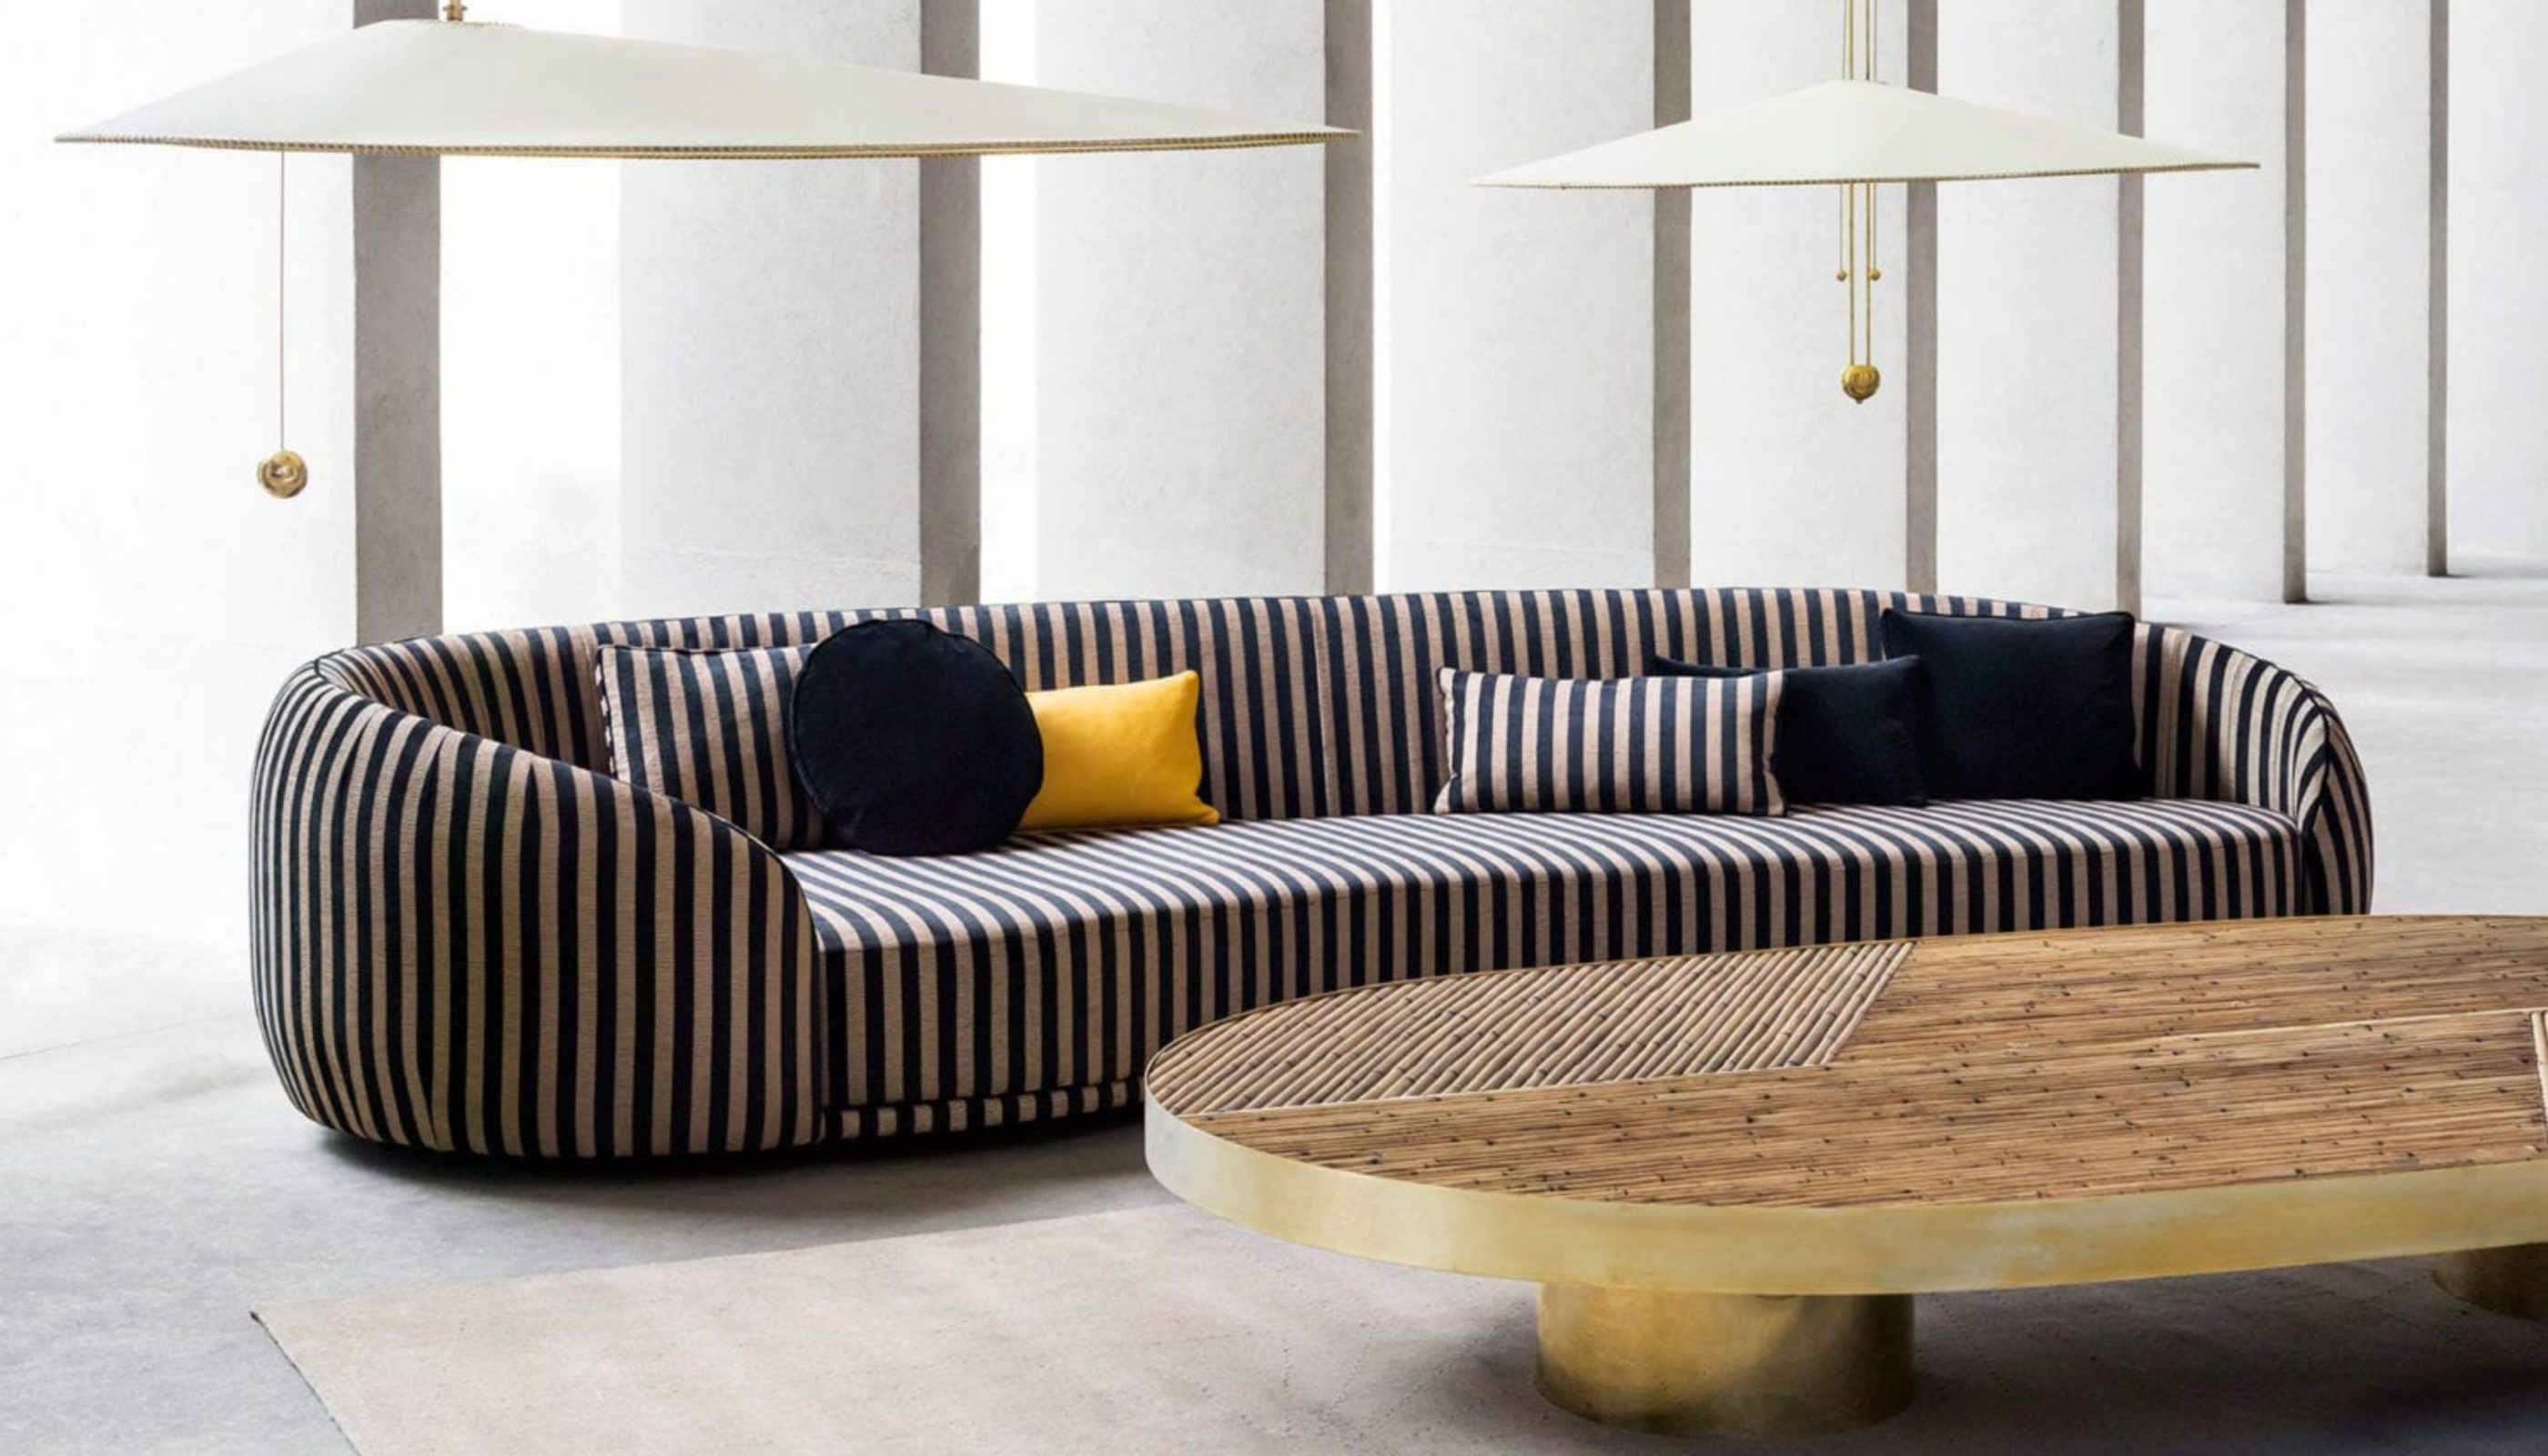 Curved Sofas You'll Love - Welcome! Collection Sofa by CHIARA ANDREATTI FOR FENDI